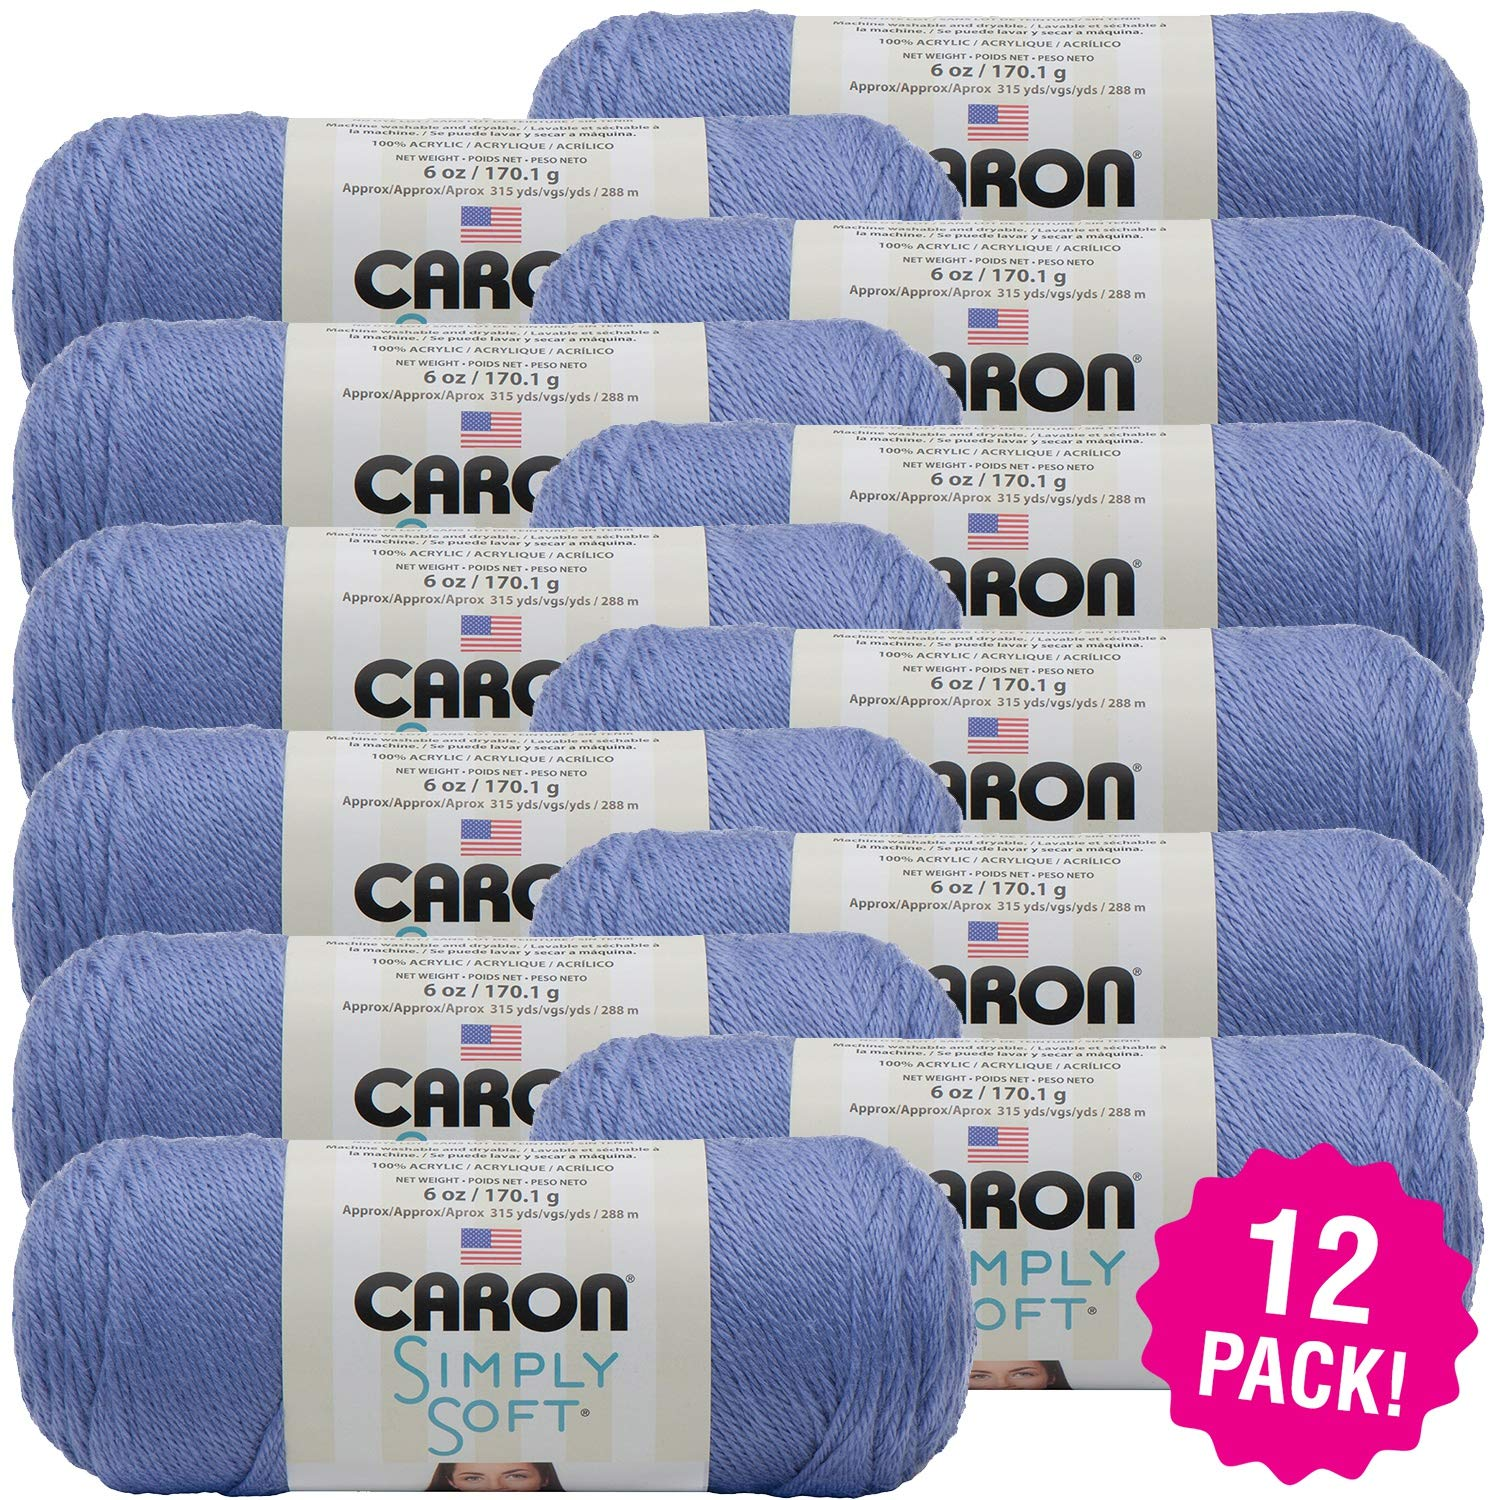 Caron 98073 Simply Soft Solids Yarn-Lavender Blue, Multipack of 12, Pack